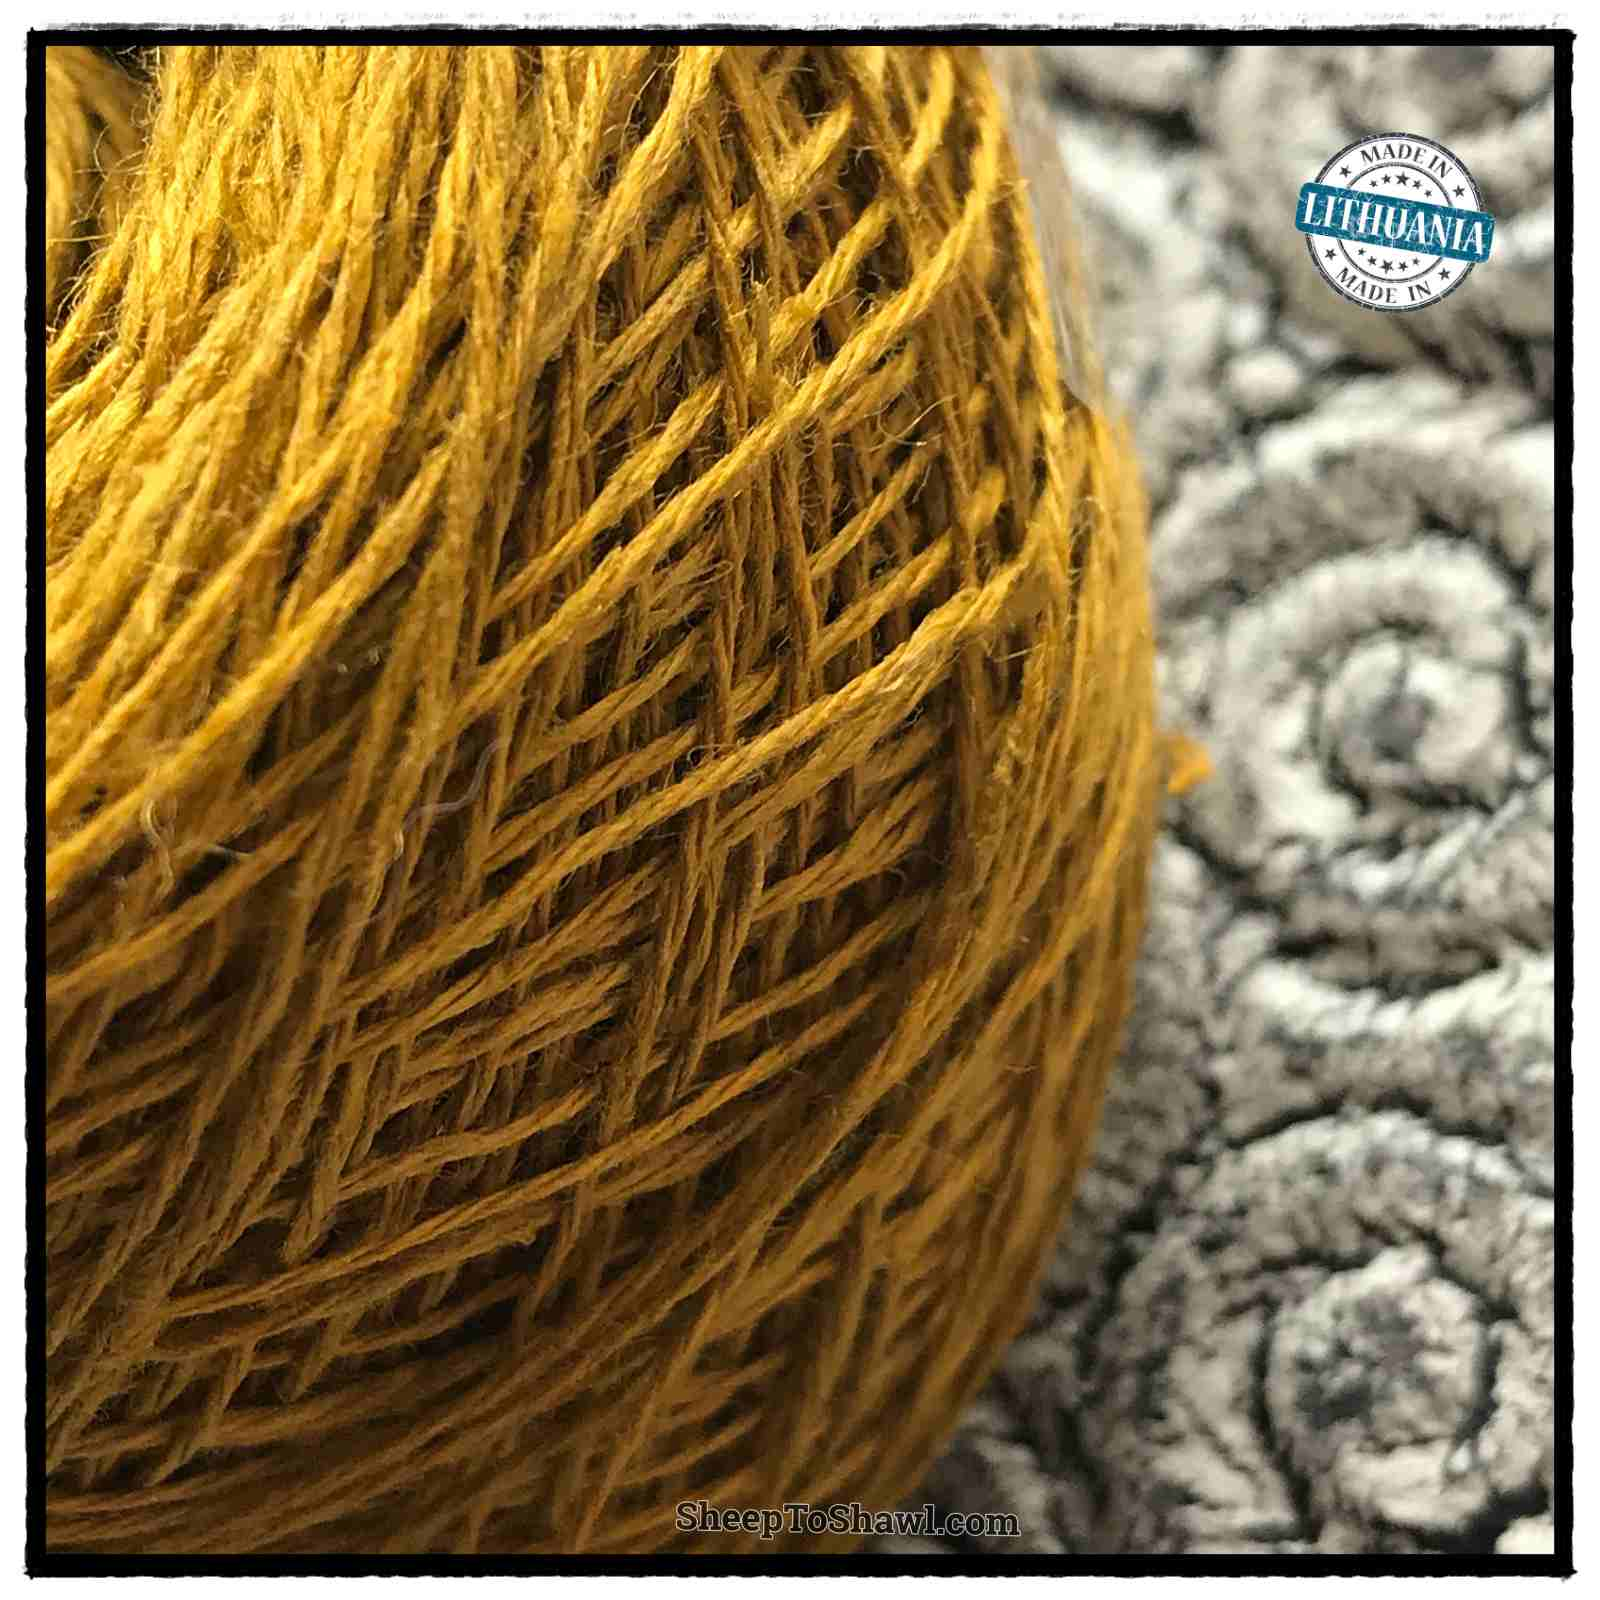 Linen Yarn From Lithuania - 3 ply Mustard Gold 2